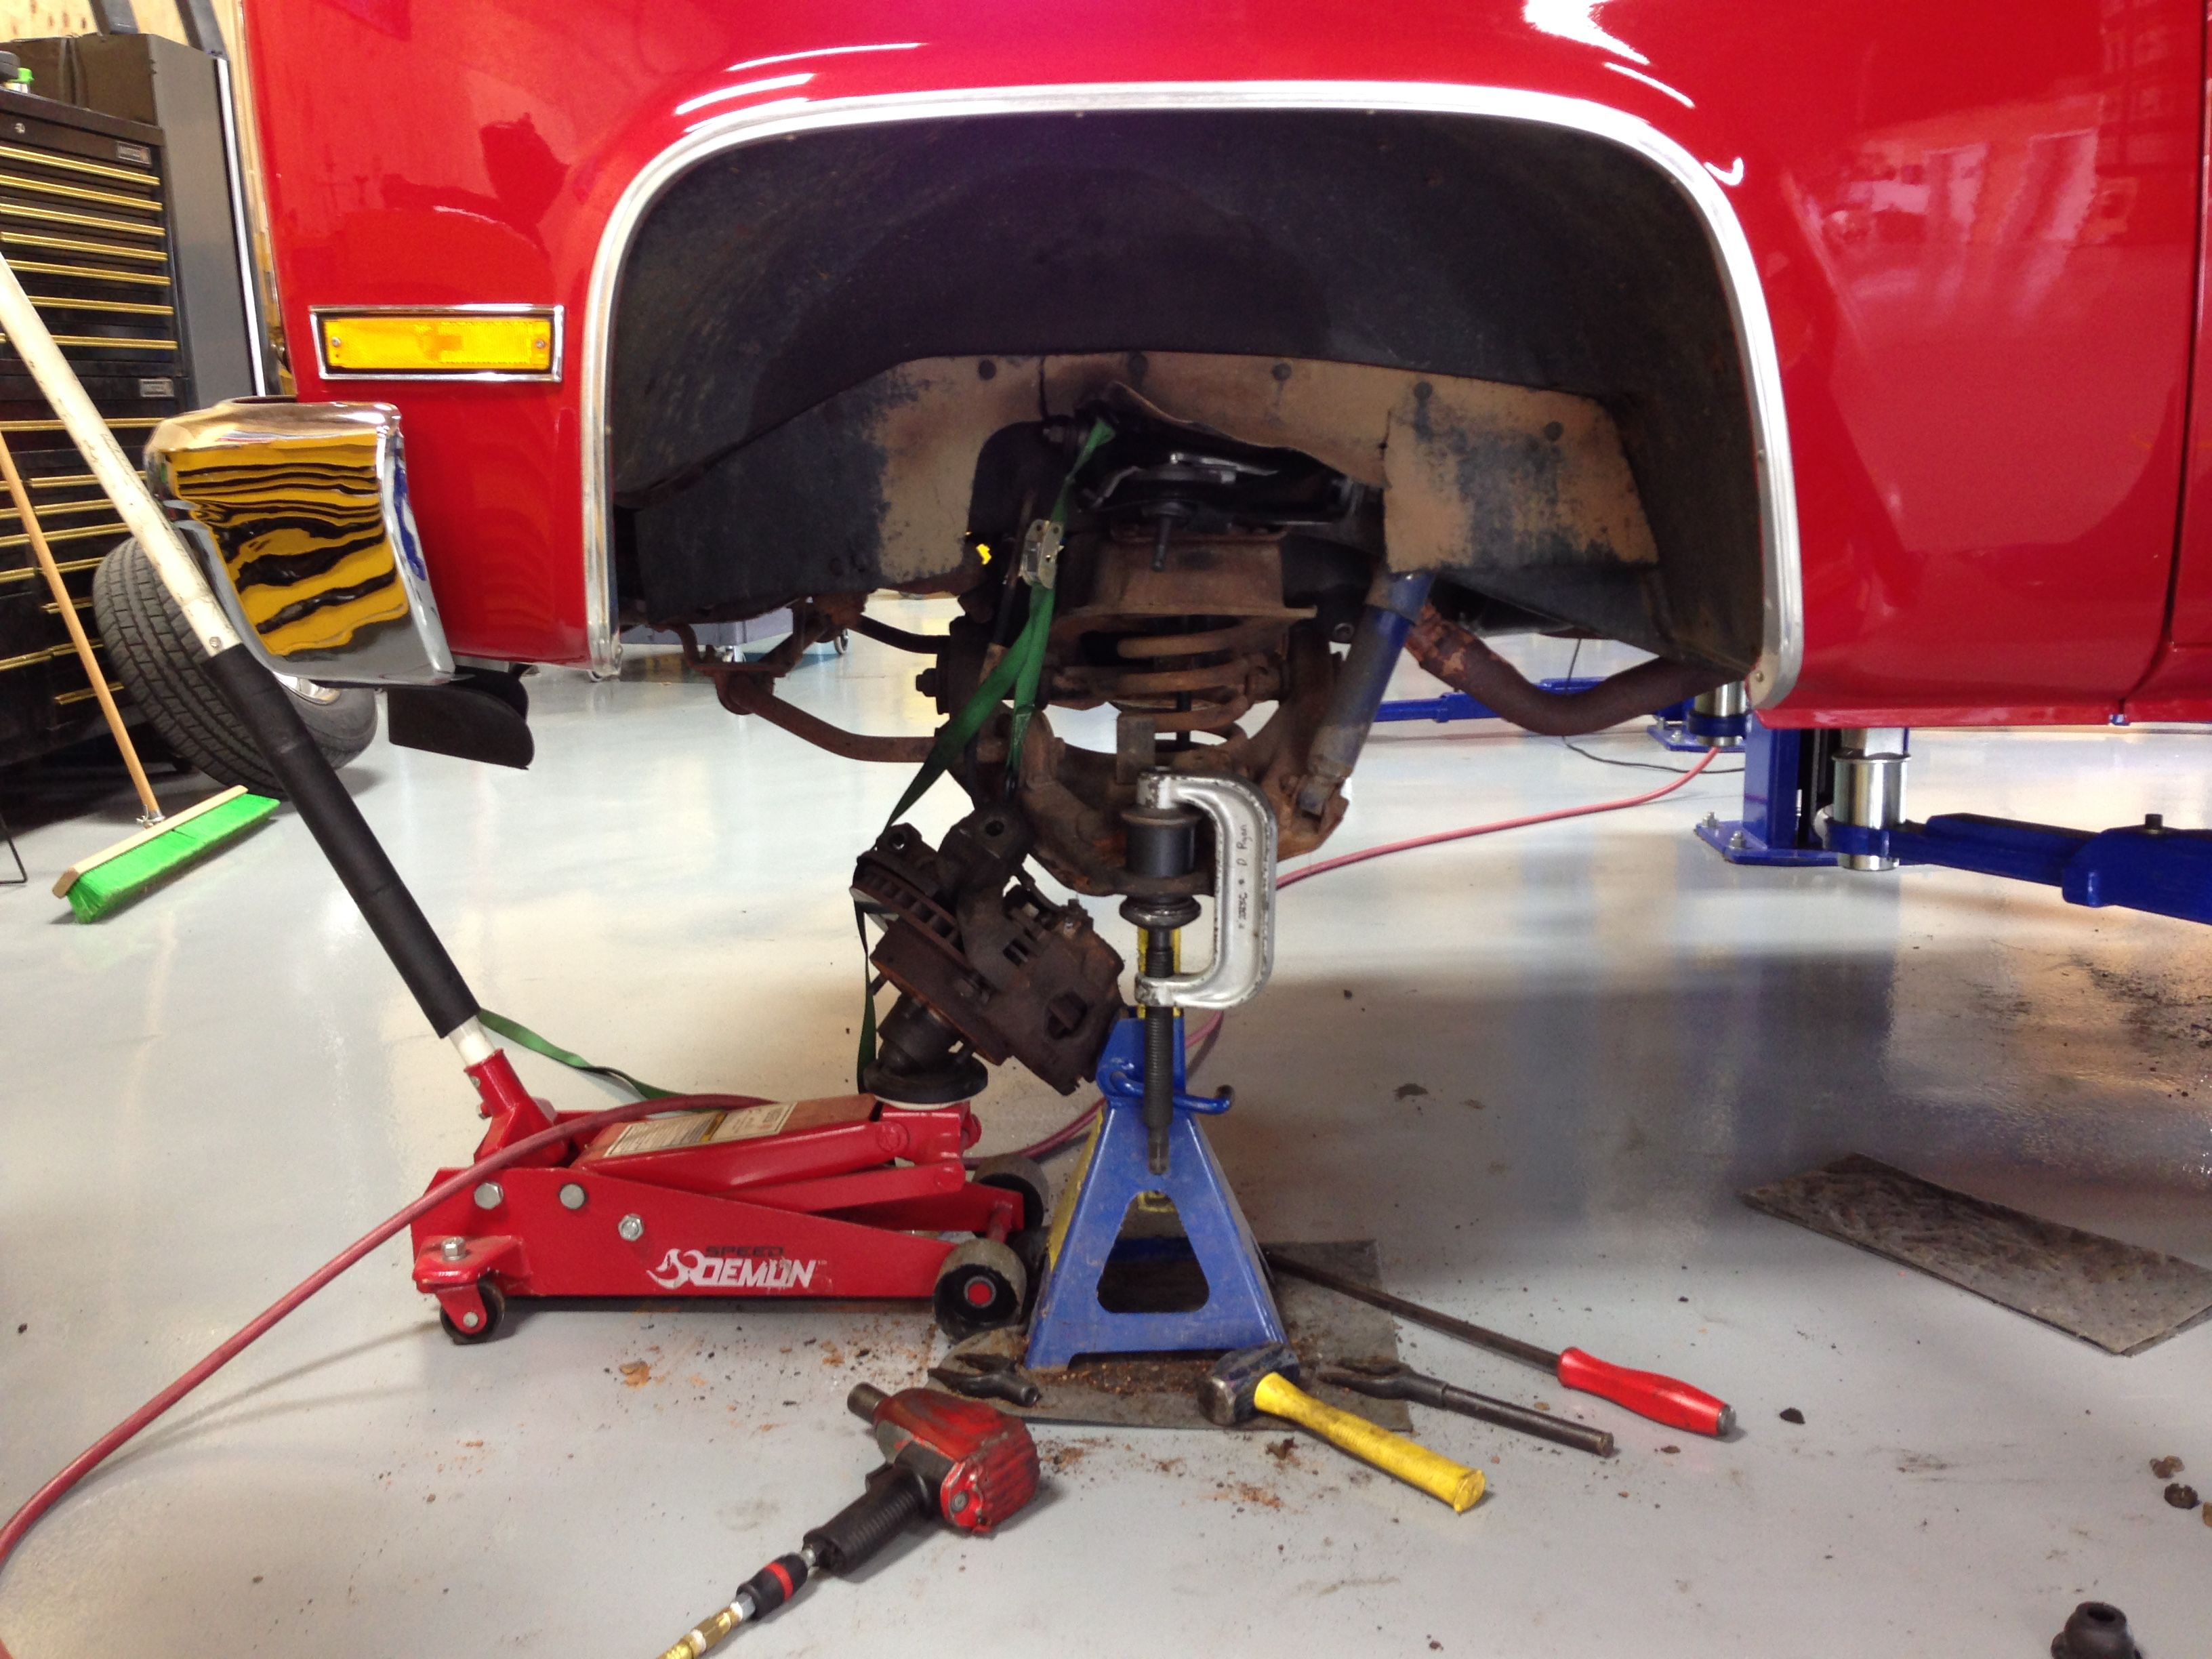 Here We Are Replacing Lower Ball Joints On A 1987 Chevy Silverado We Used The Blue Jack Stand To Hold Up The 1987 Chevy Silverado Automotive Shops Automotive